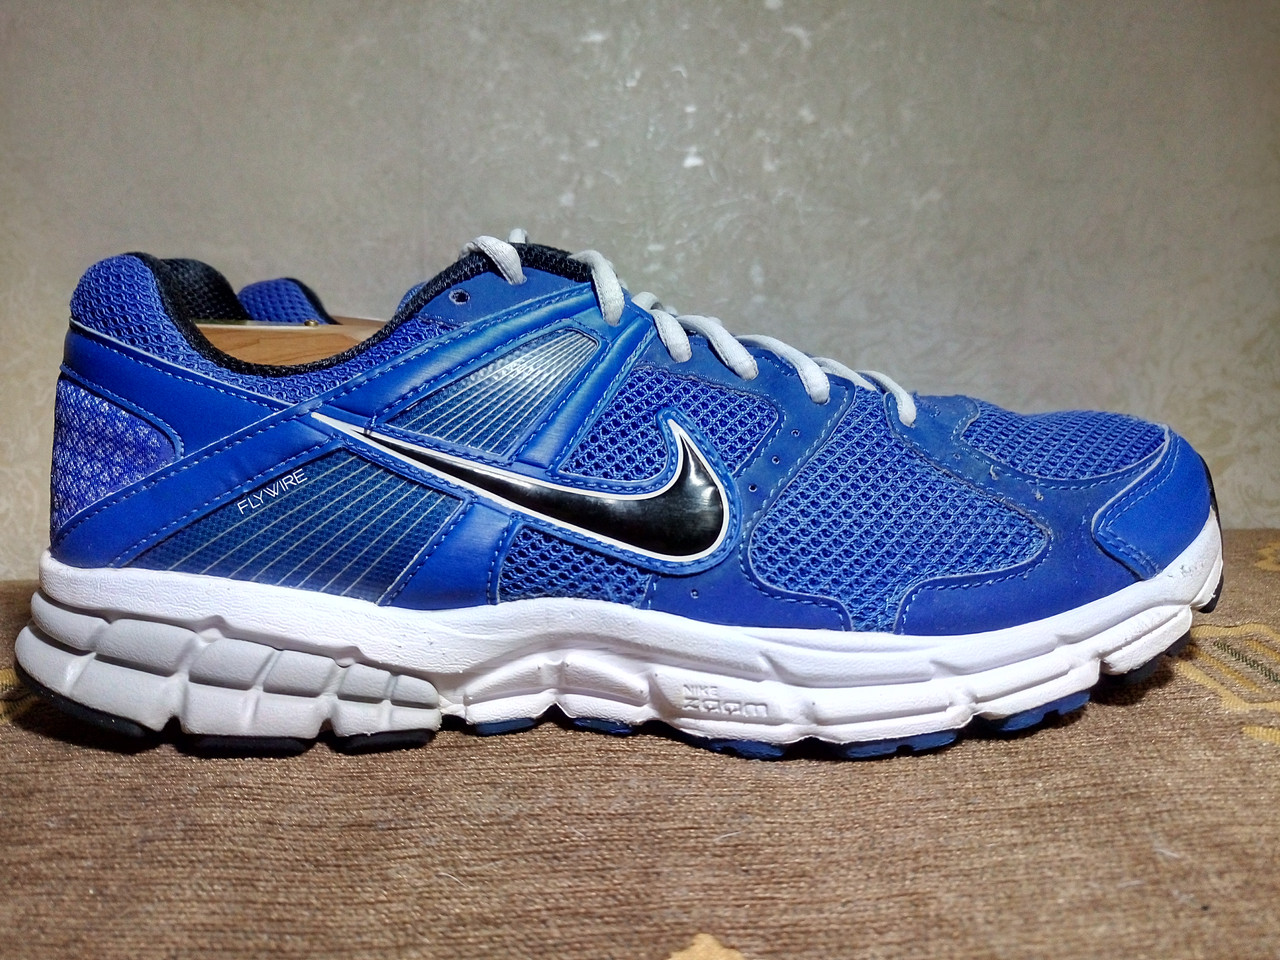 b004557b4289 Nike Zoom Flywire Structure 14 кроссовки. 43 р. -